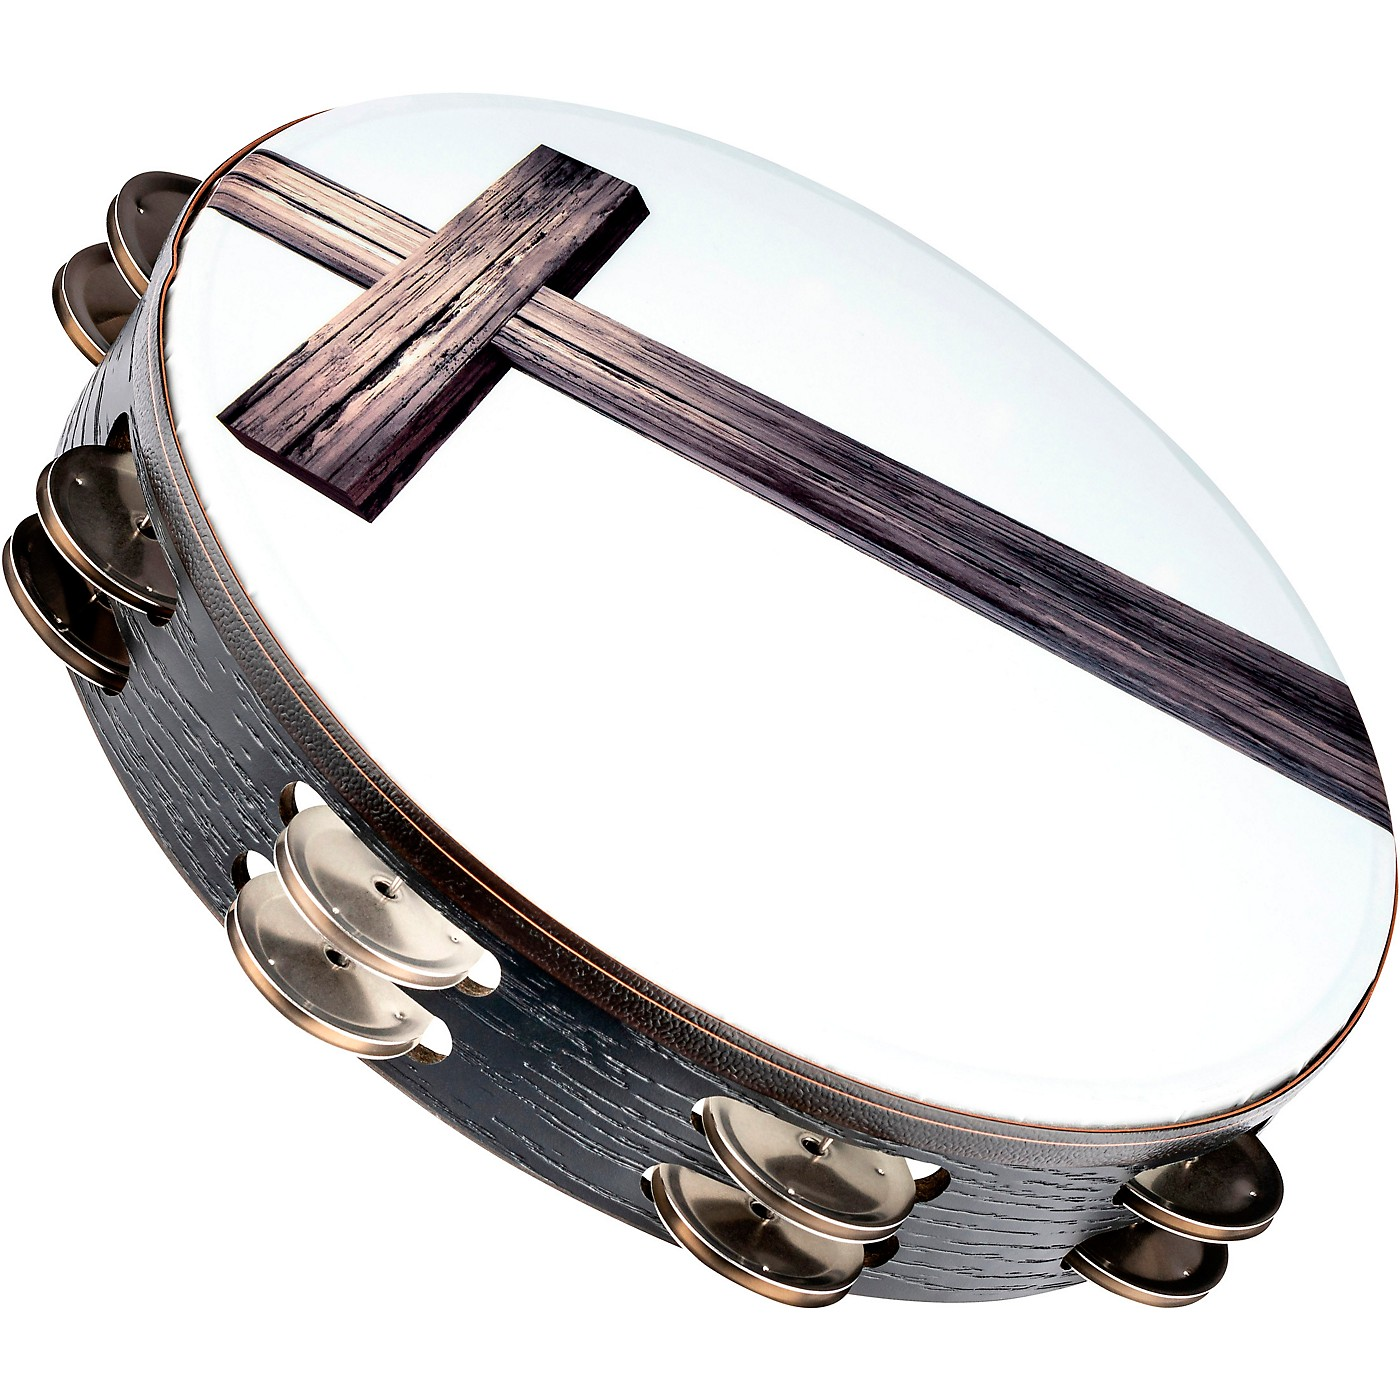 MEINL Gospel Praise and Worship Church Tambourine with Cross Graphic and Double Row Steel Jingles thumbnail